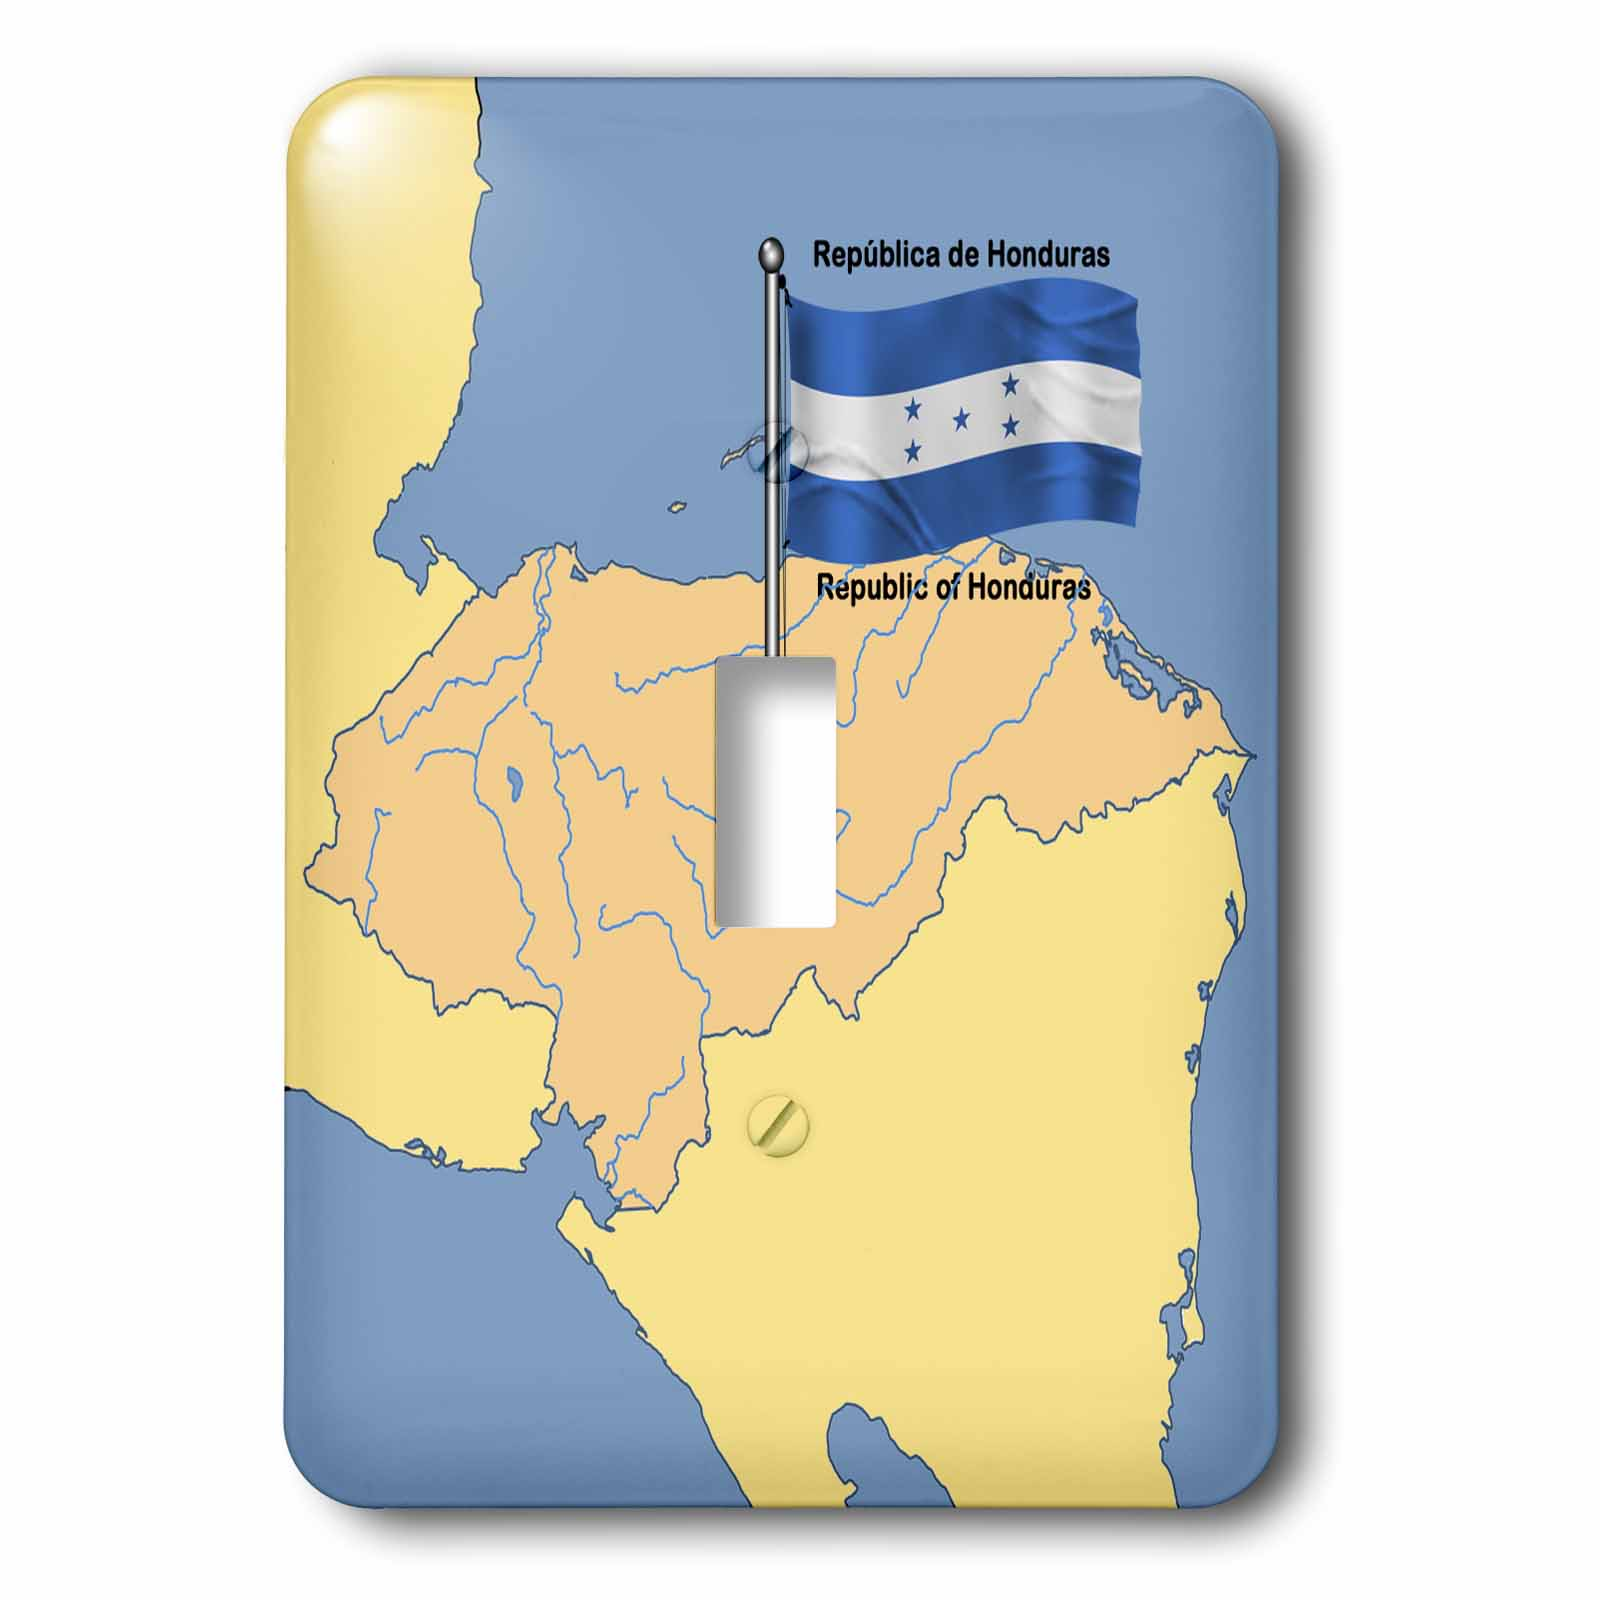 3dRose Flag and Map of Honduras with Republic of Honduras printed in both English and Spanish., Single Toggle Switch